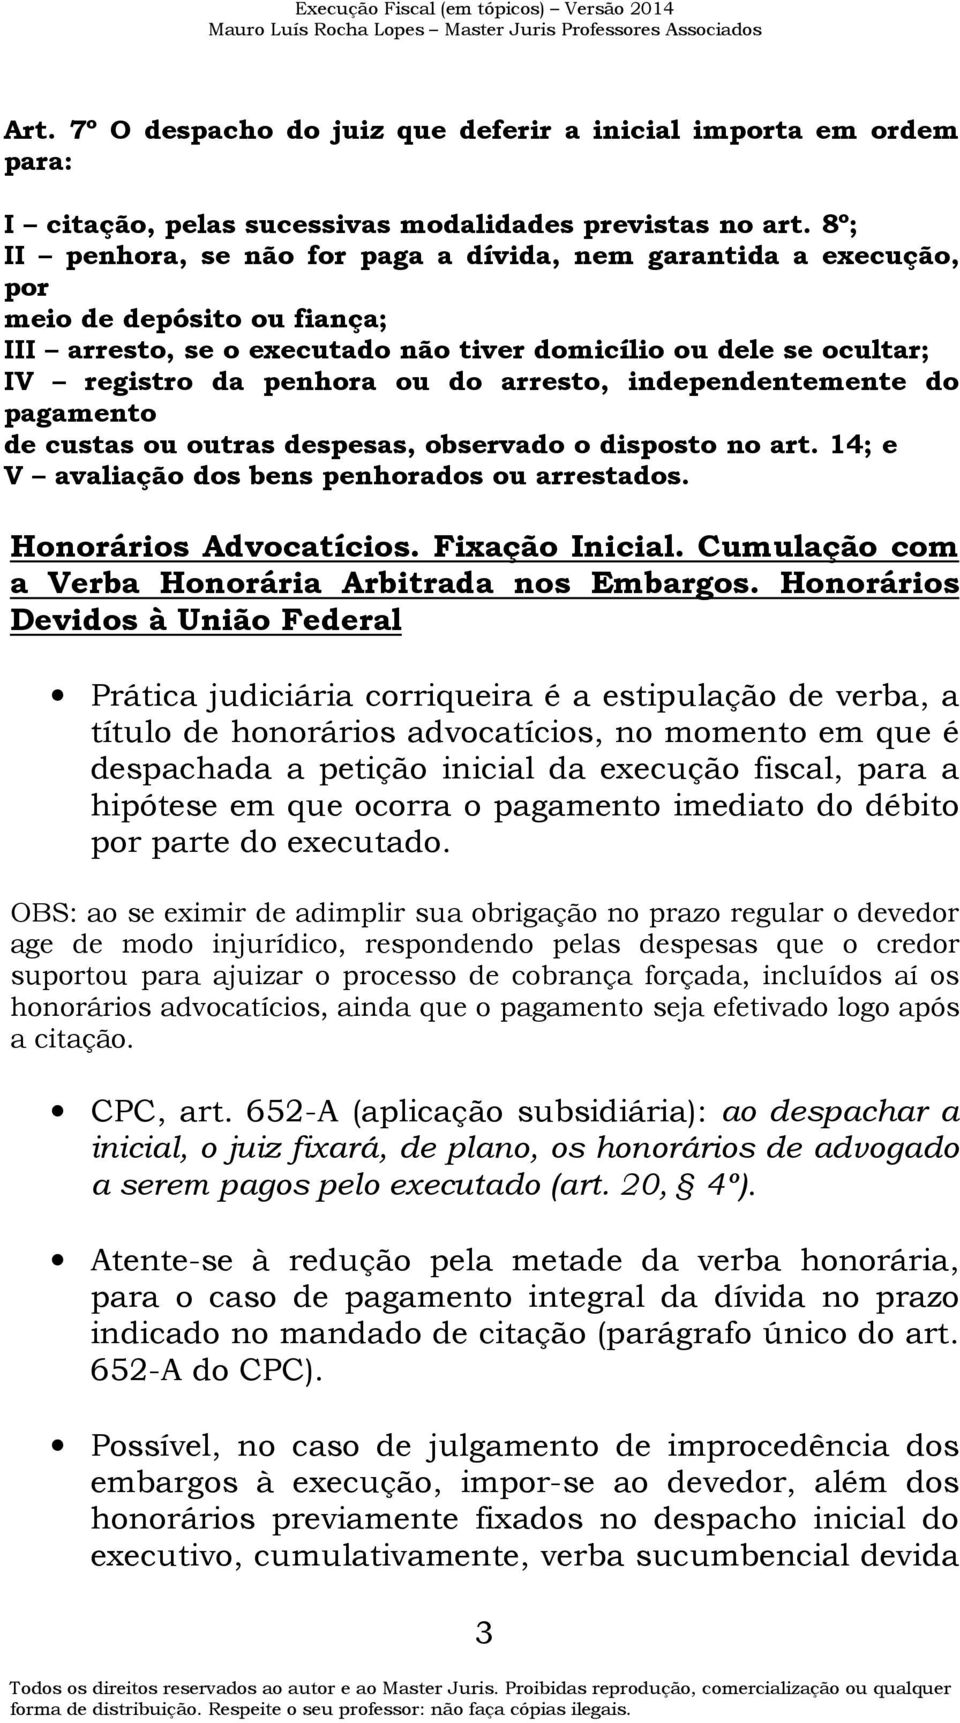 arresto, independentemente do pagamento de custas ou outras despesas, observado o disposto no art. 14; e V avaliação dos bens penhorados ou arrestados. Honorários Advocatícios. Fixação Inicial.